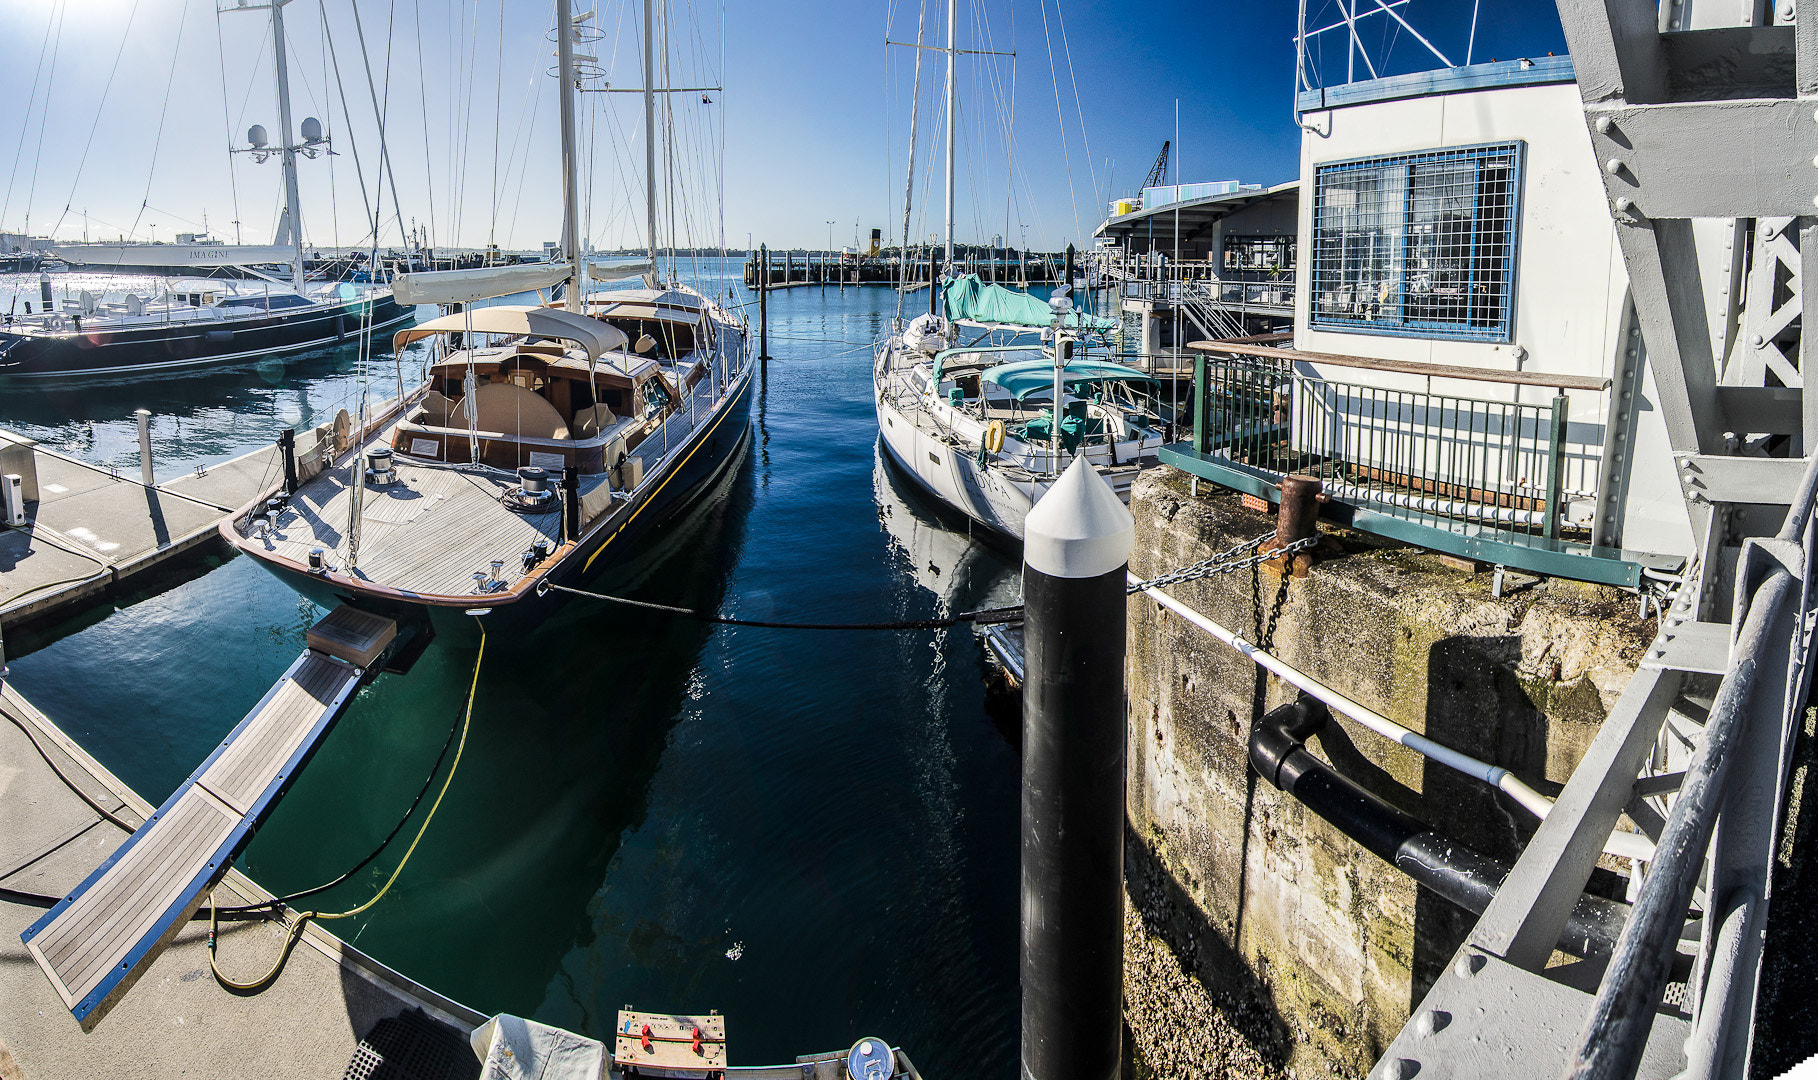 Photograph Afternoon at Wynyard Quarter by Chris Veale on 500px